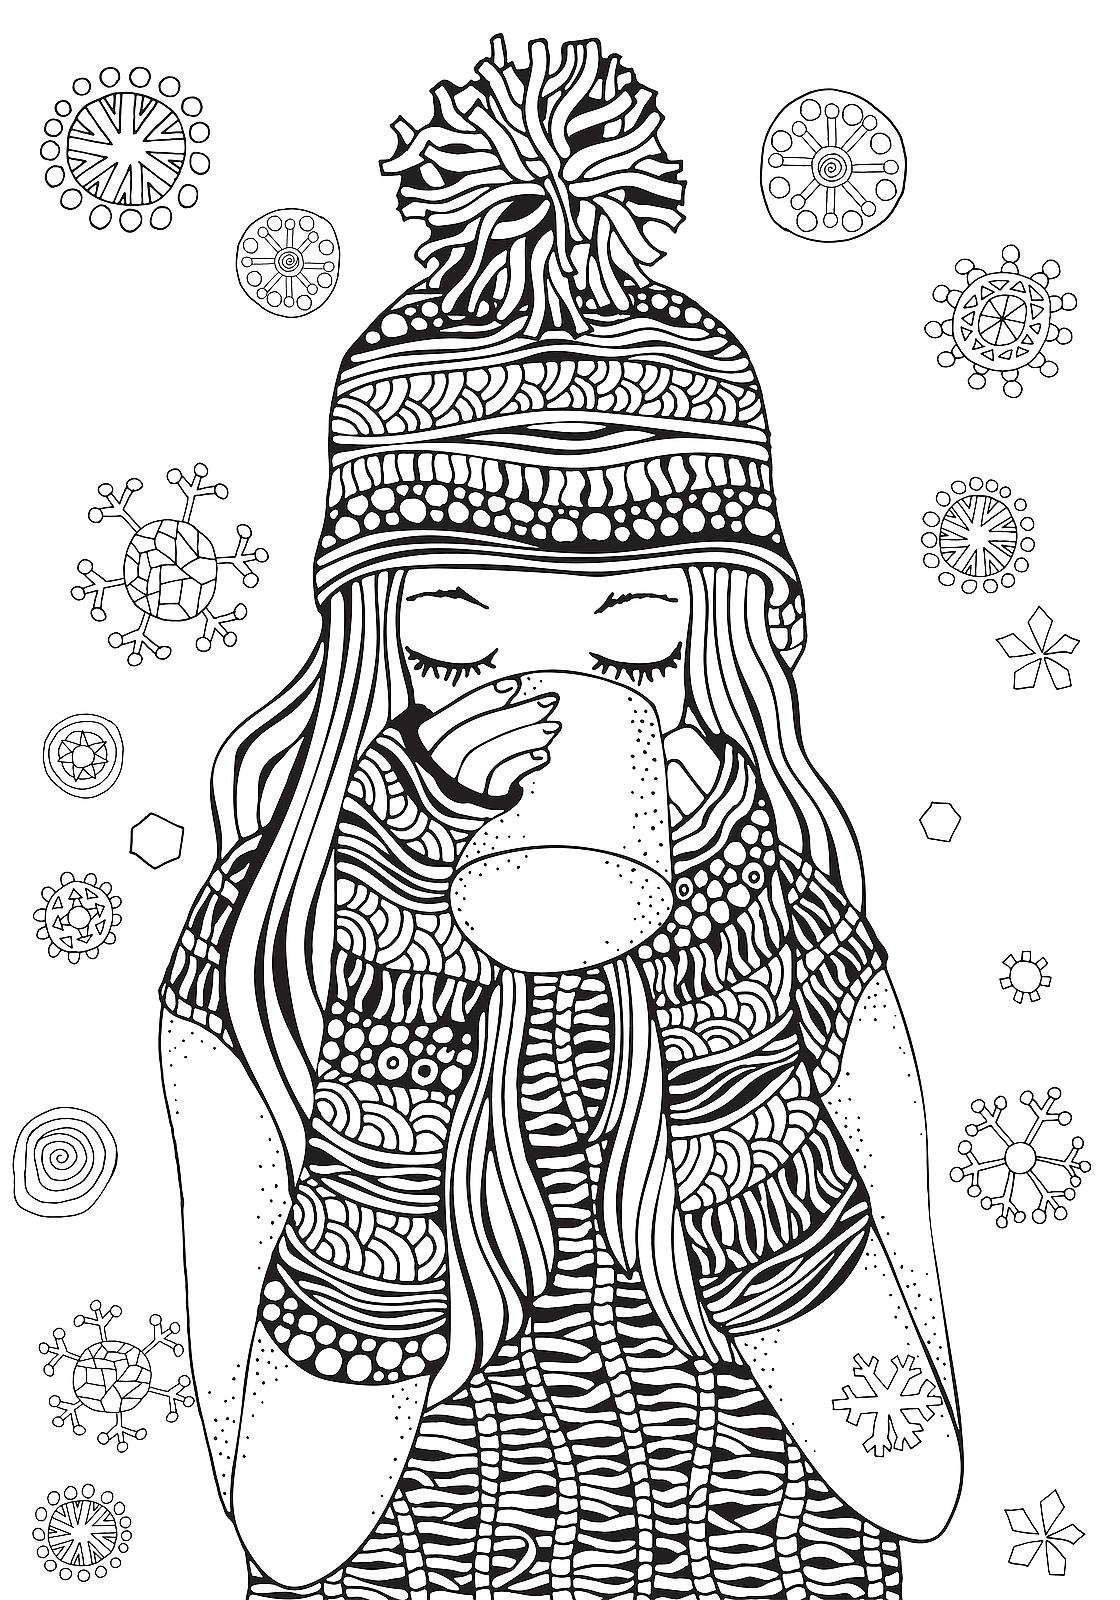 Winter Puzzle & Coloring Pages: Printable Winter-Themed Activity ...